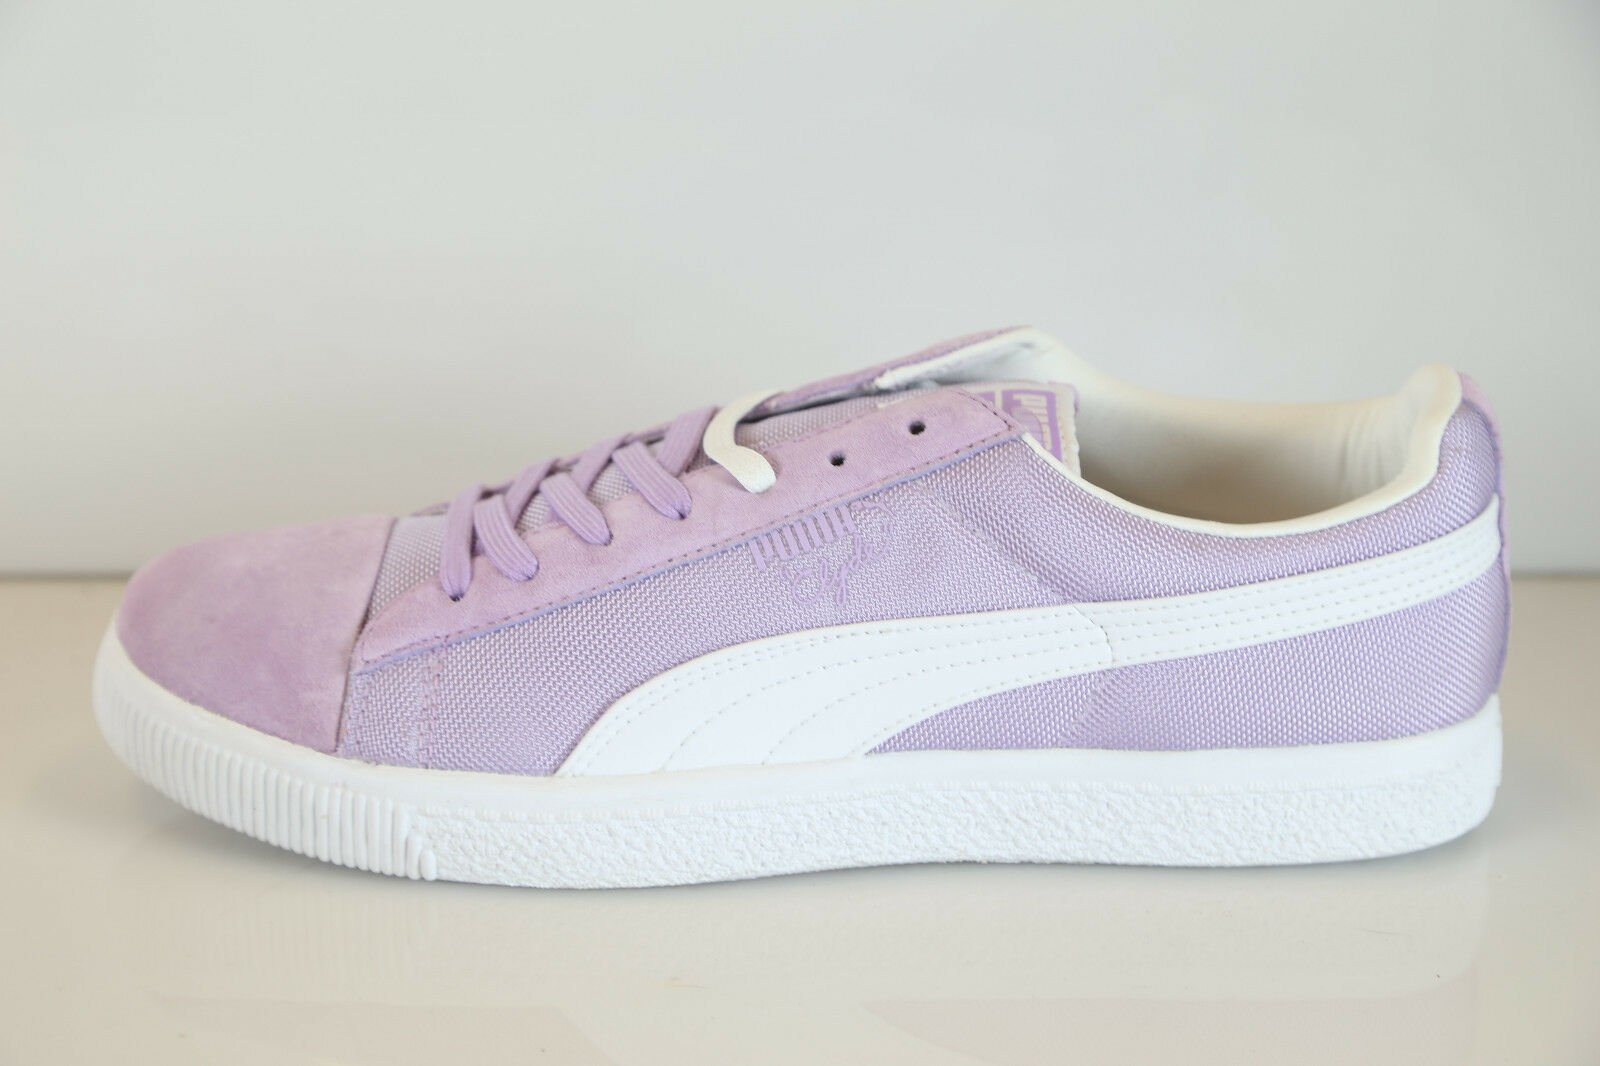 Puma Orchid X Undefeated Clyde Ballistic Orchid Puma Bloom size 11 12 142463